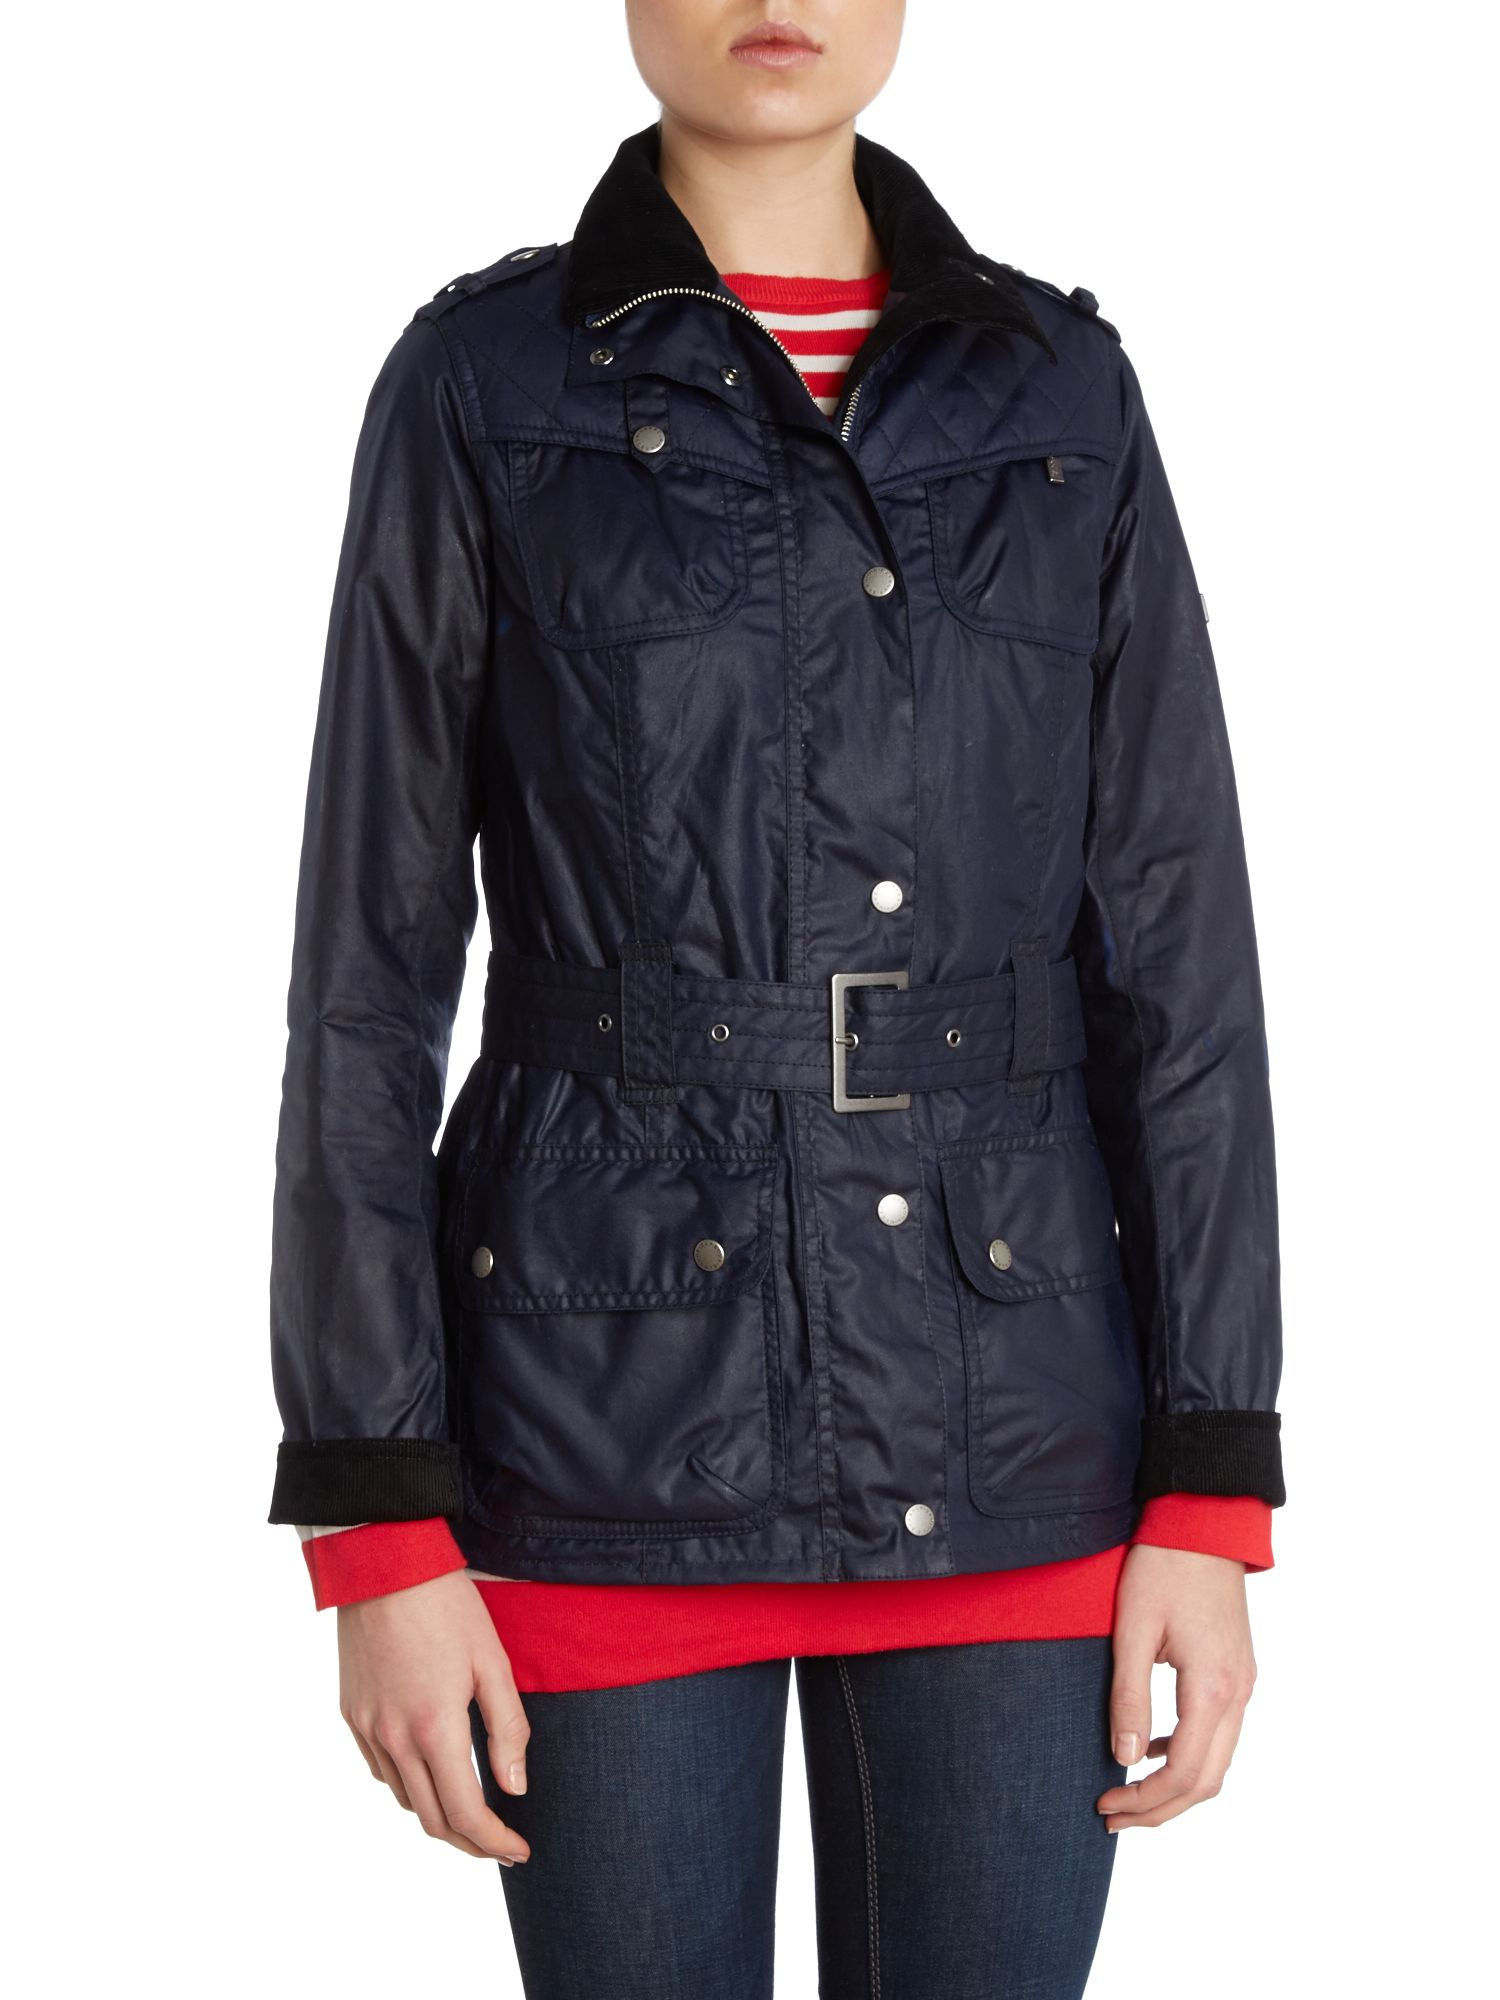 Ignition Belted Jacket